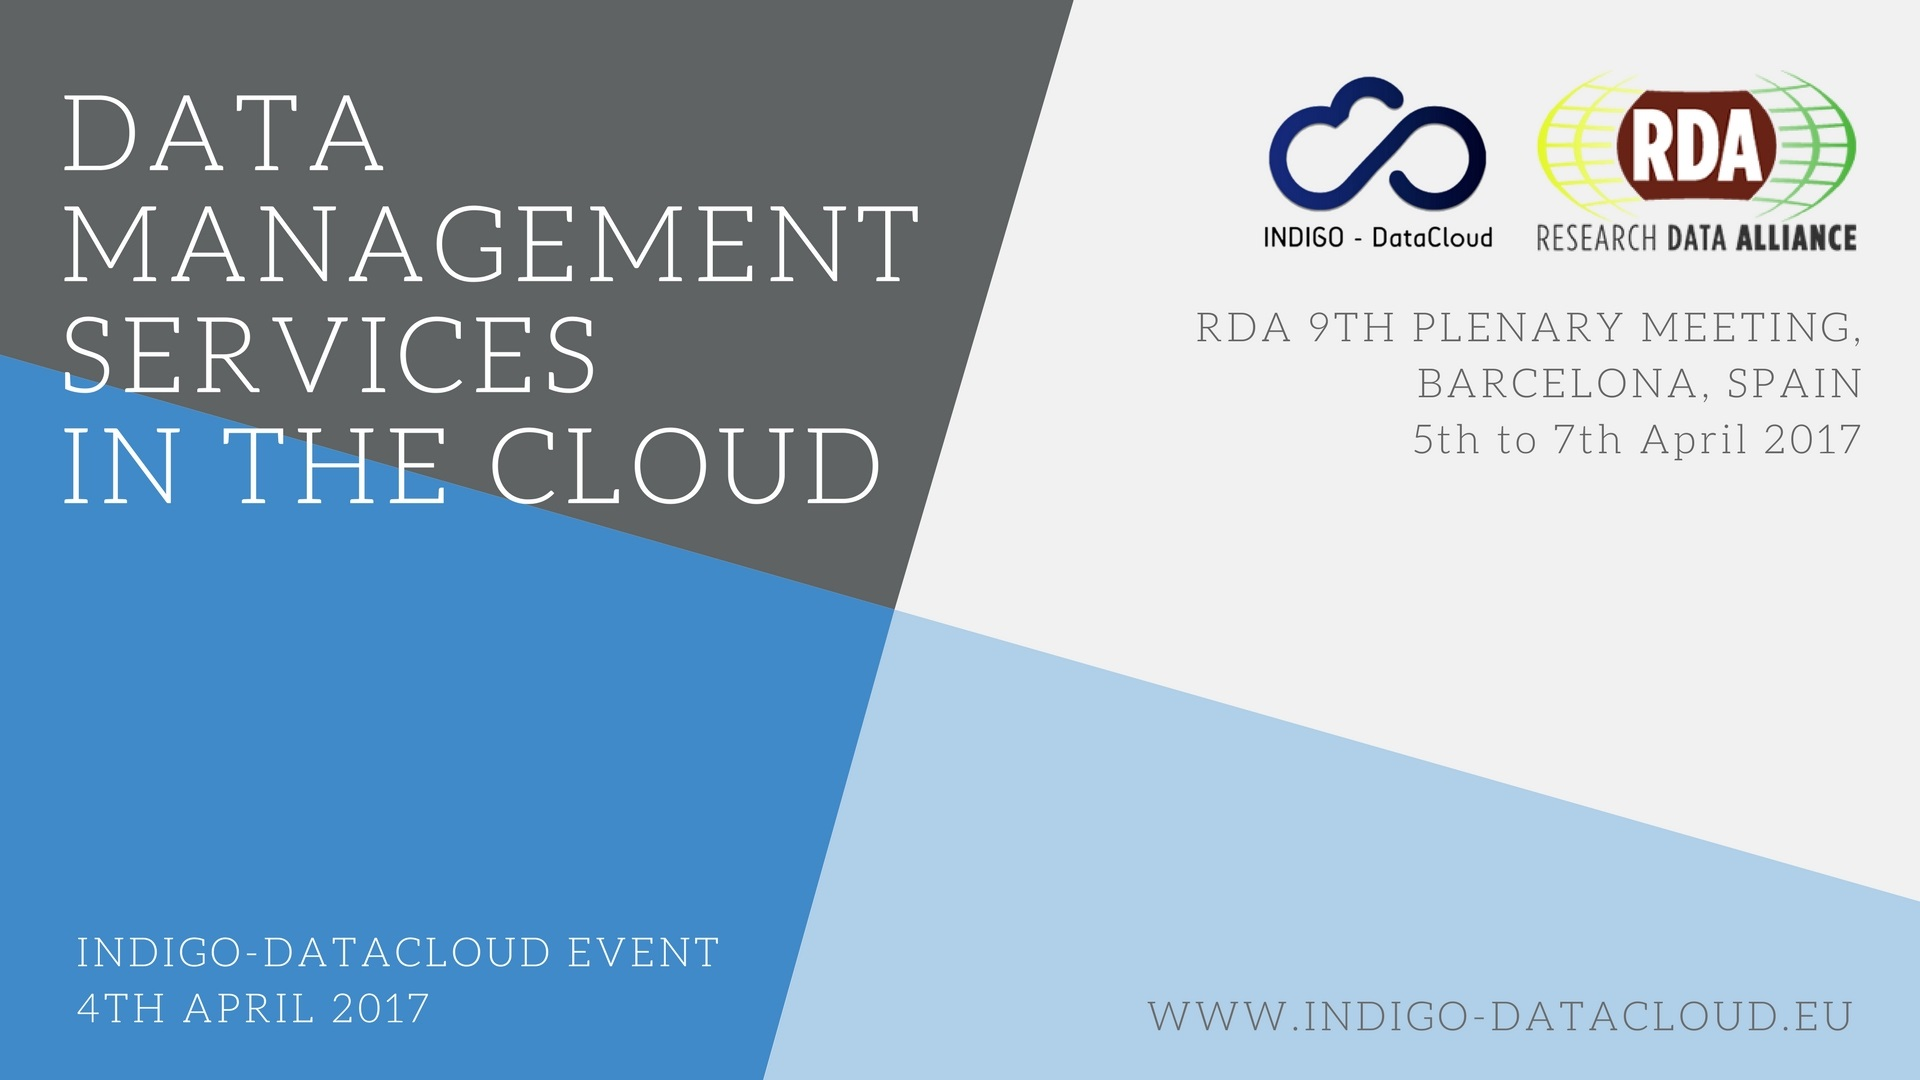 Data Management Services in the Cloud